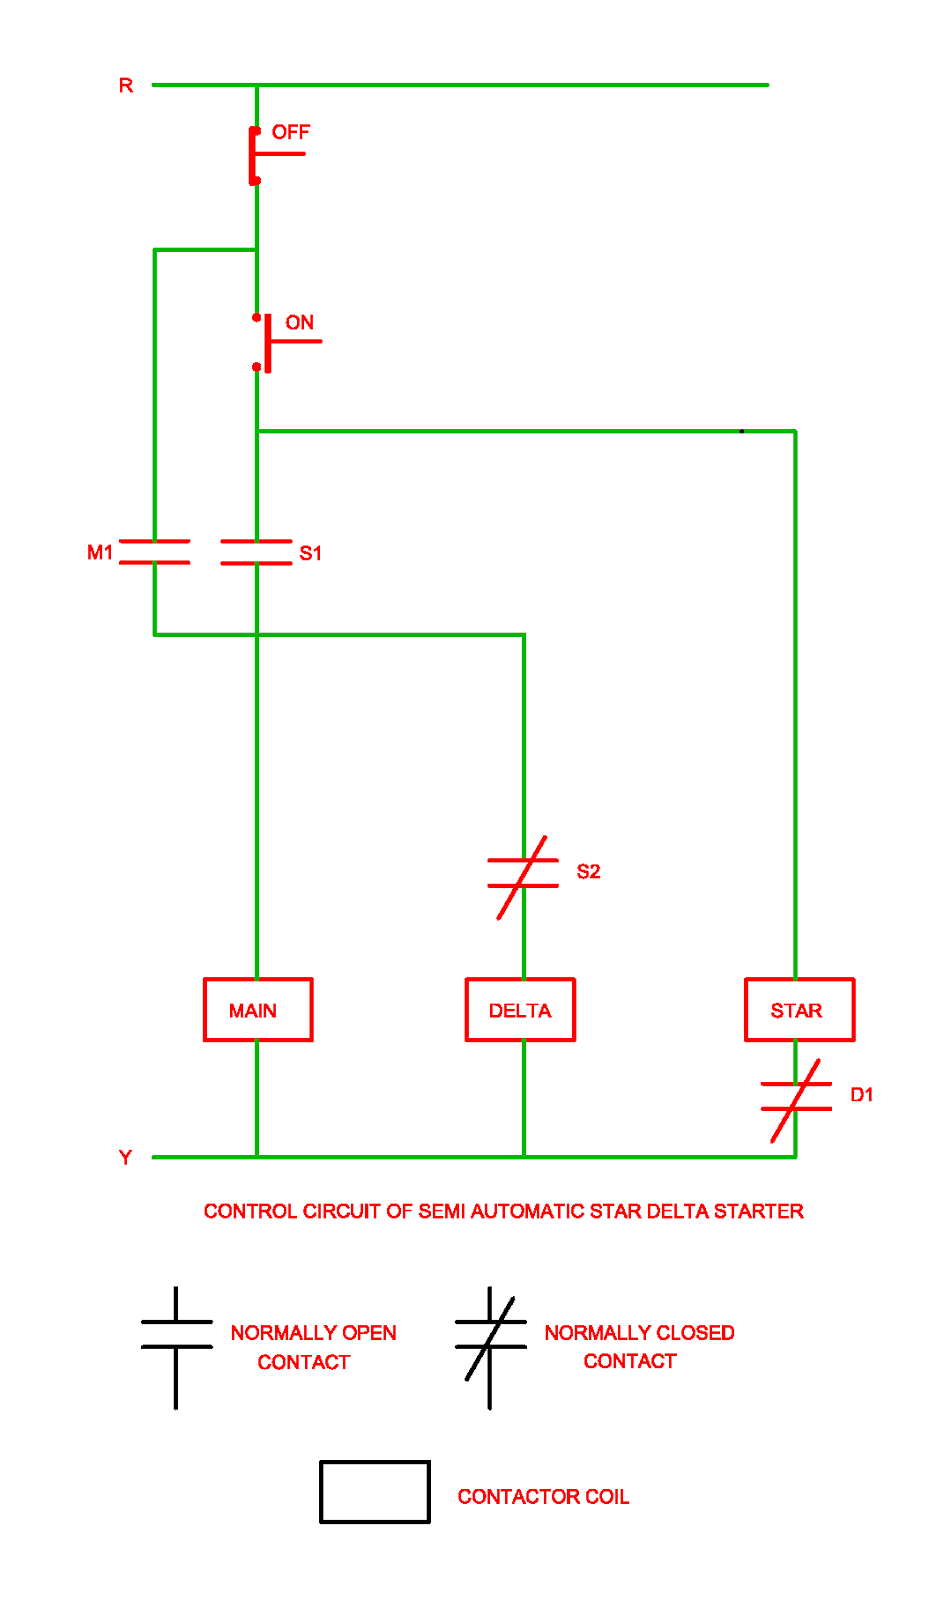 Generator Auto Start Wiring Diagram Volleyball 4 2 Offense Control Circuit Of Semi Automatic Star Delta Starter | Electrical Revolution